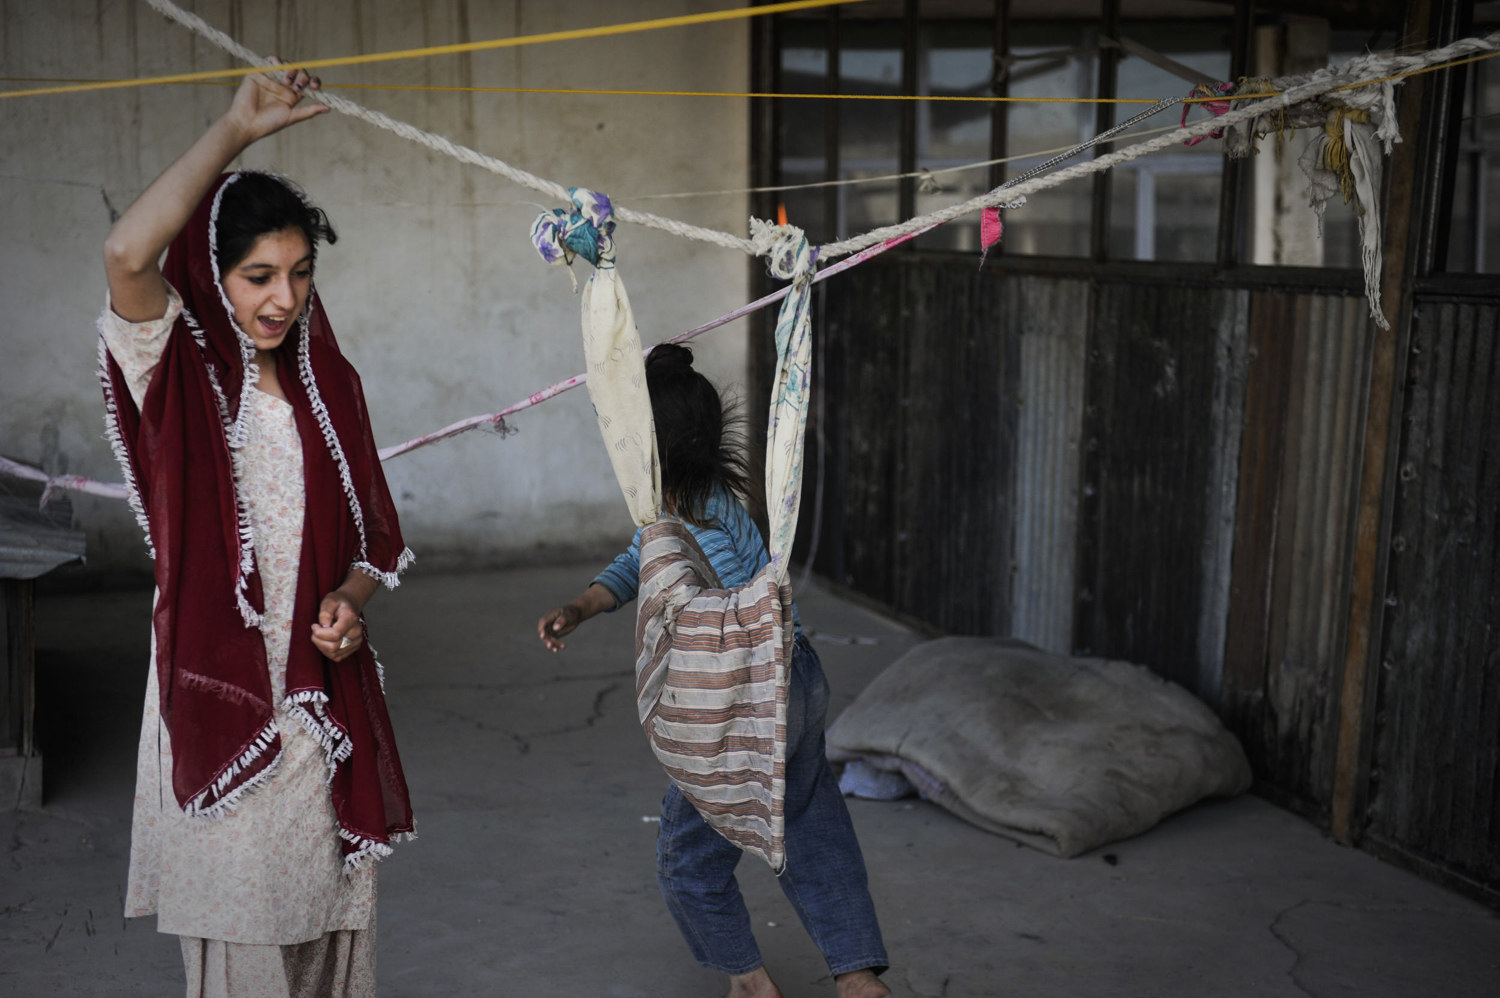 A sikh girl plays with her little brother in Kabul, Afghanistan. Many Sikh's including boys don't attend school in Afghanistan as they are marginalized in the community. Homeschooling is not an option as many parents have not attended schooling either.